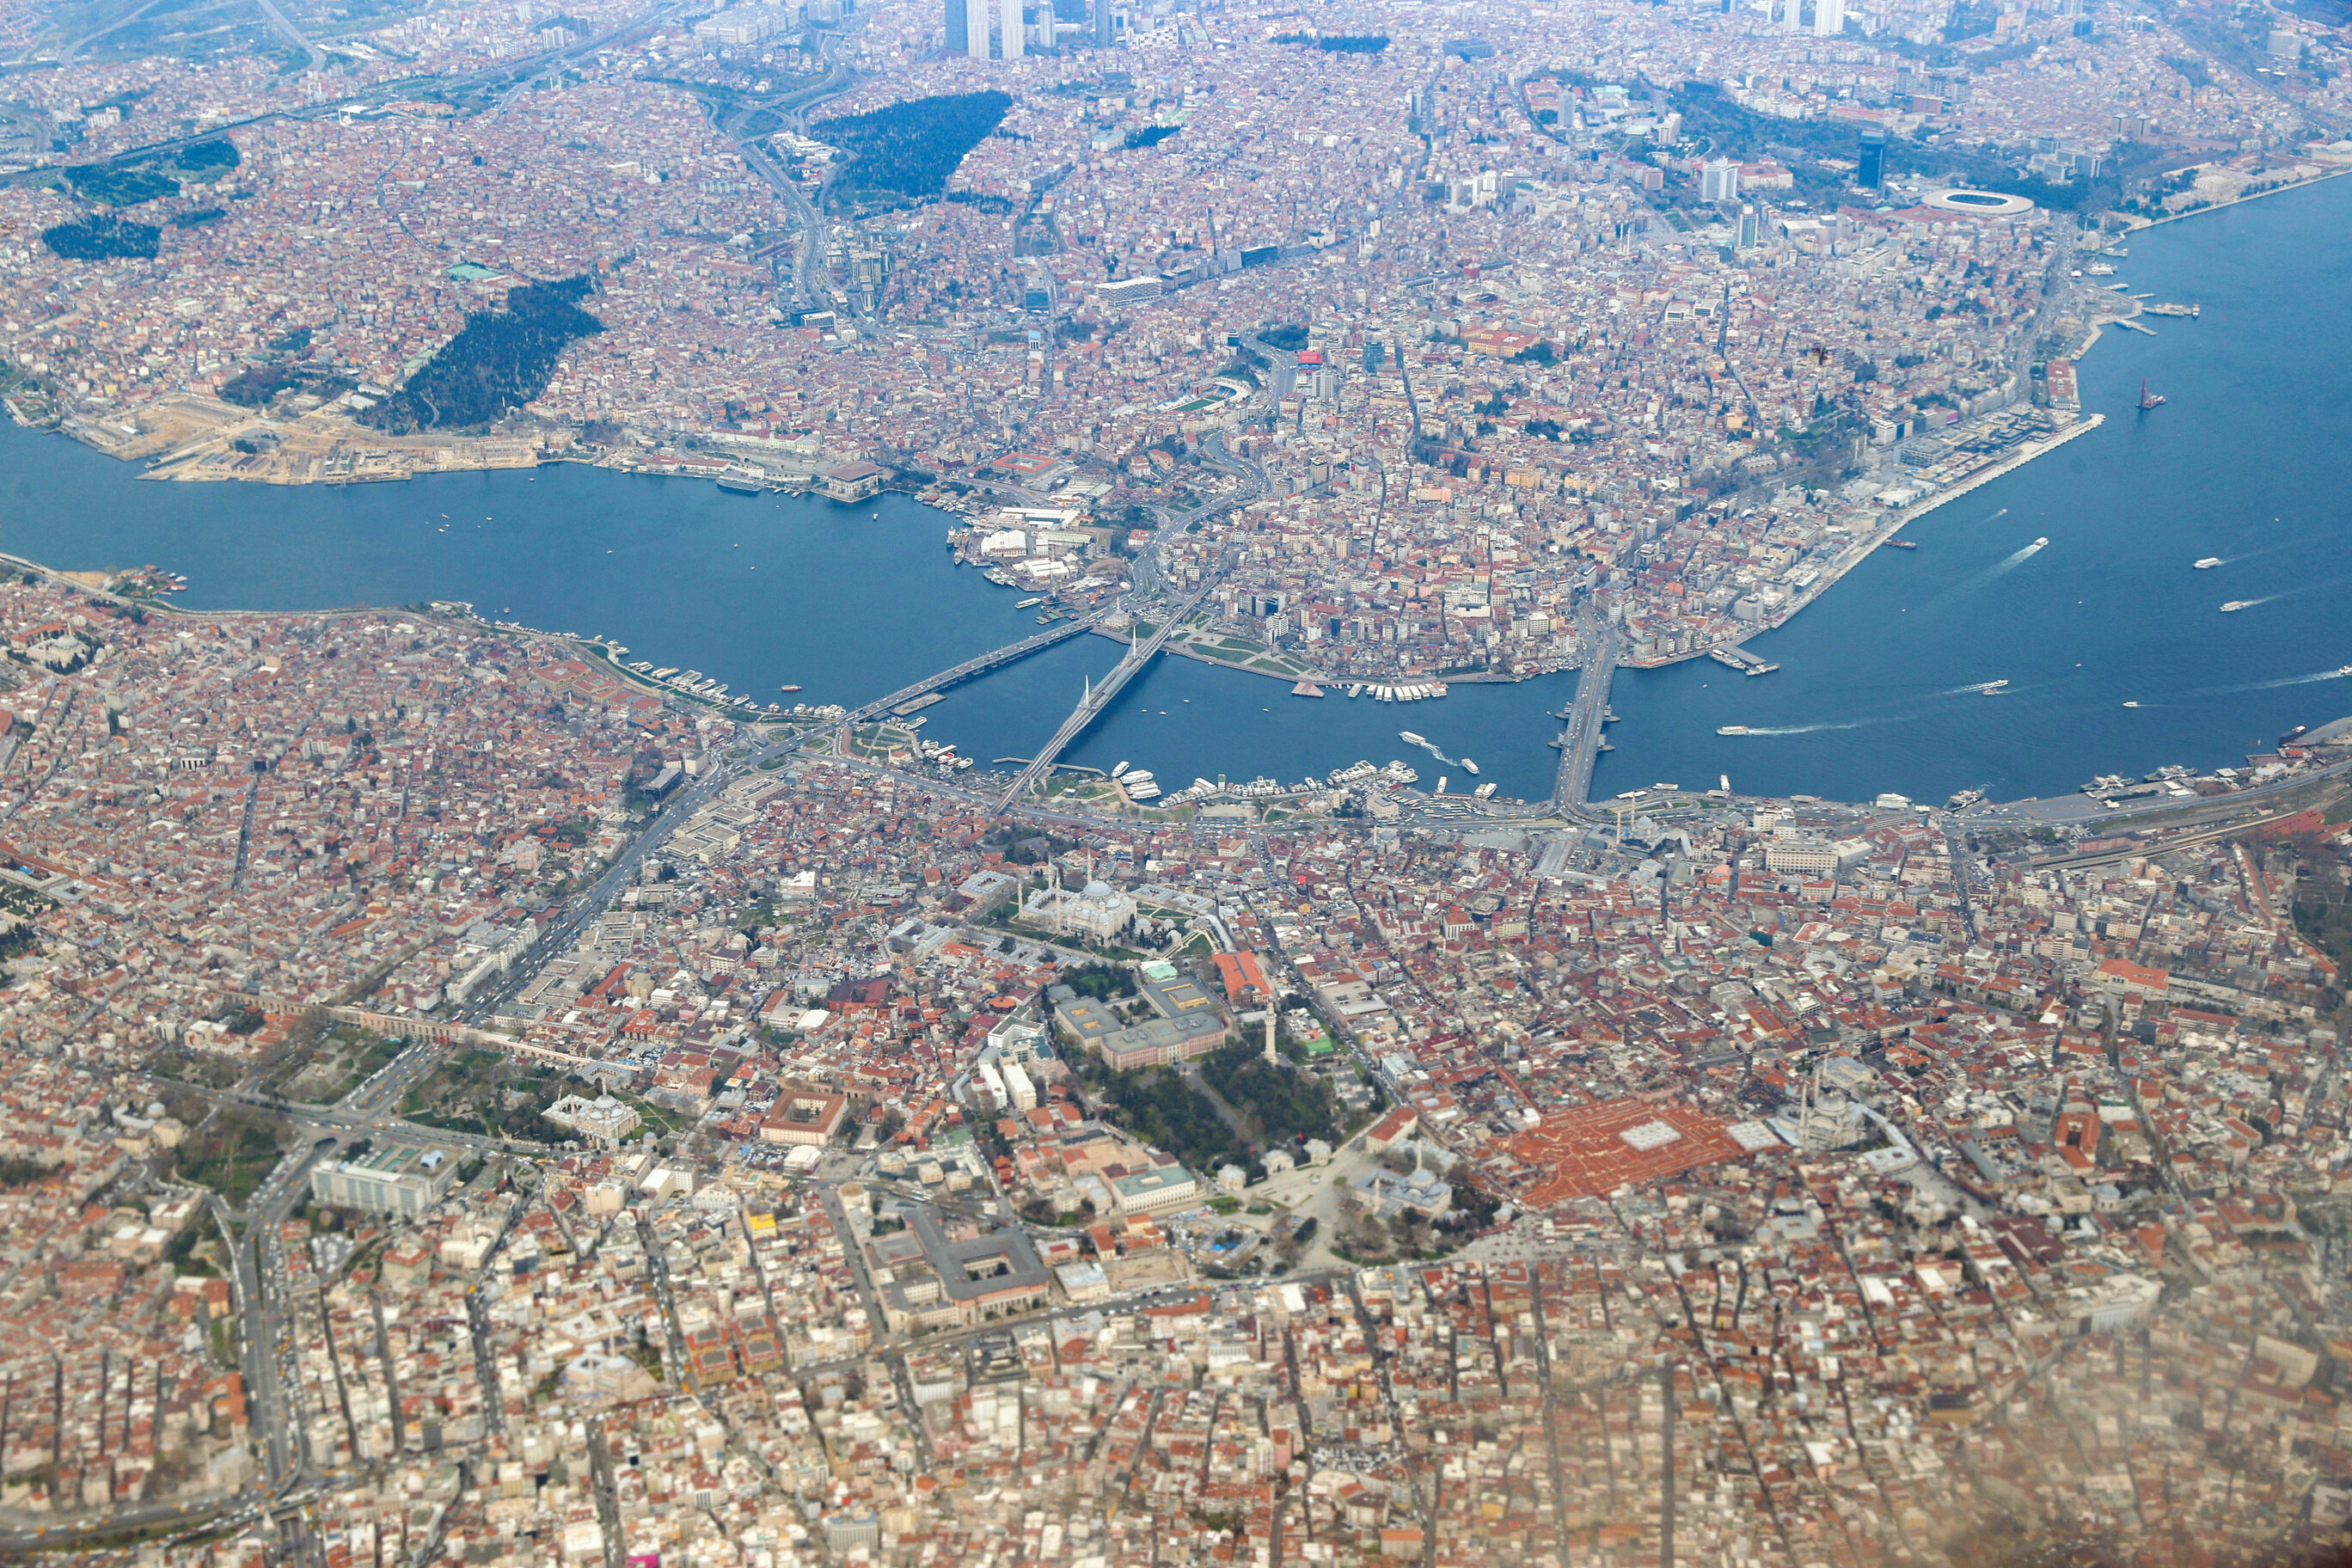 Istanbul's stunning views from above